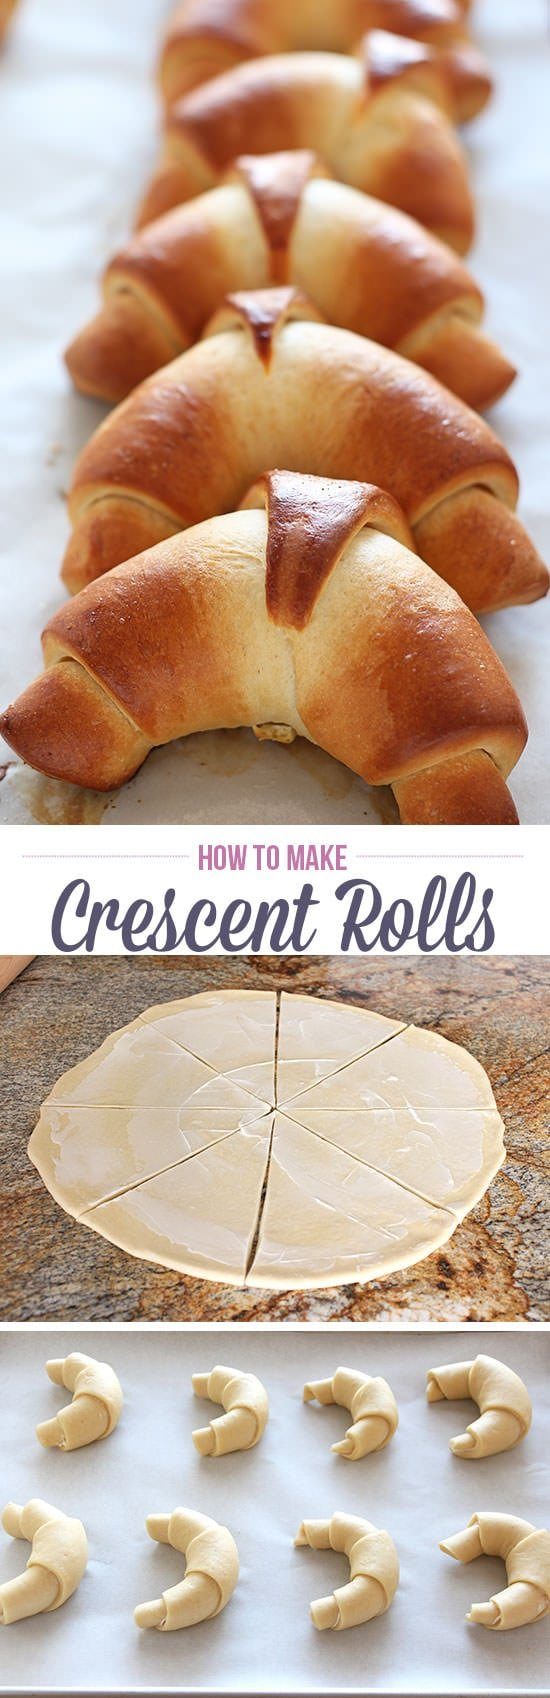 SO buttery and GOOD! I can't believe I was intimidated to make these - they're so easy!